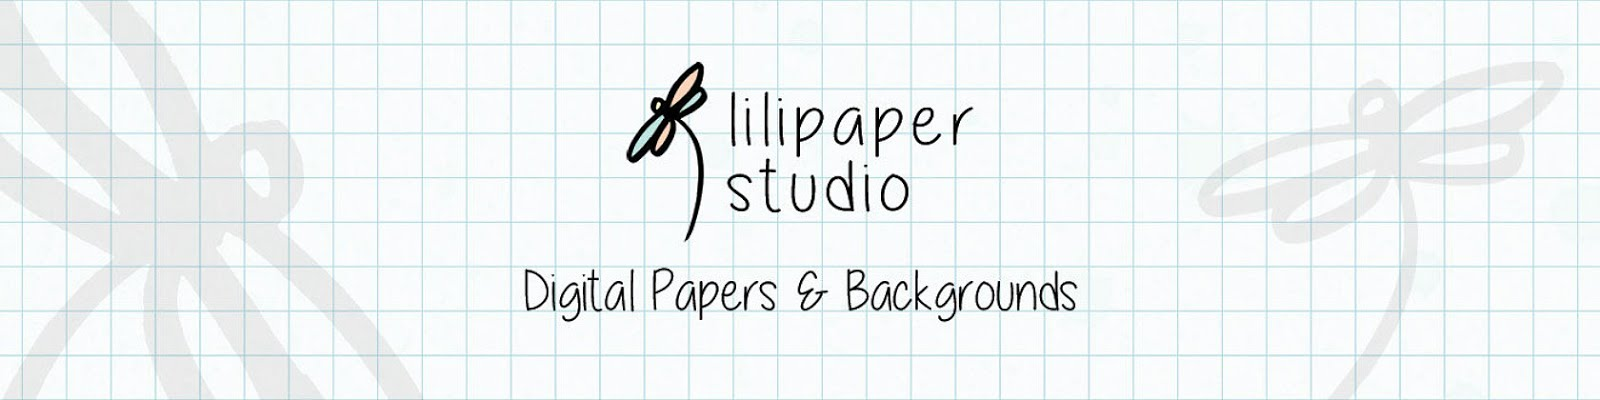 lilipaperstudio shop